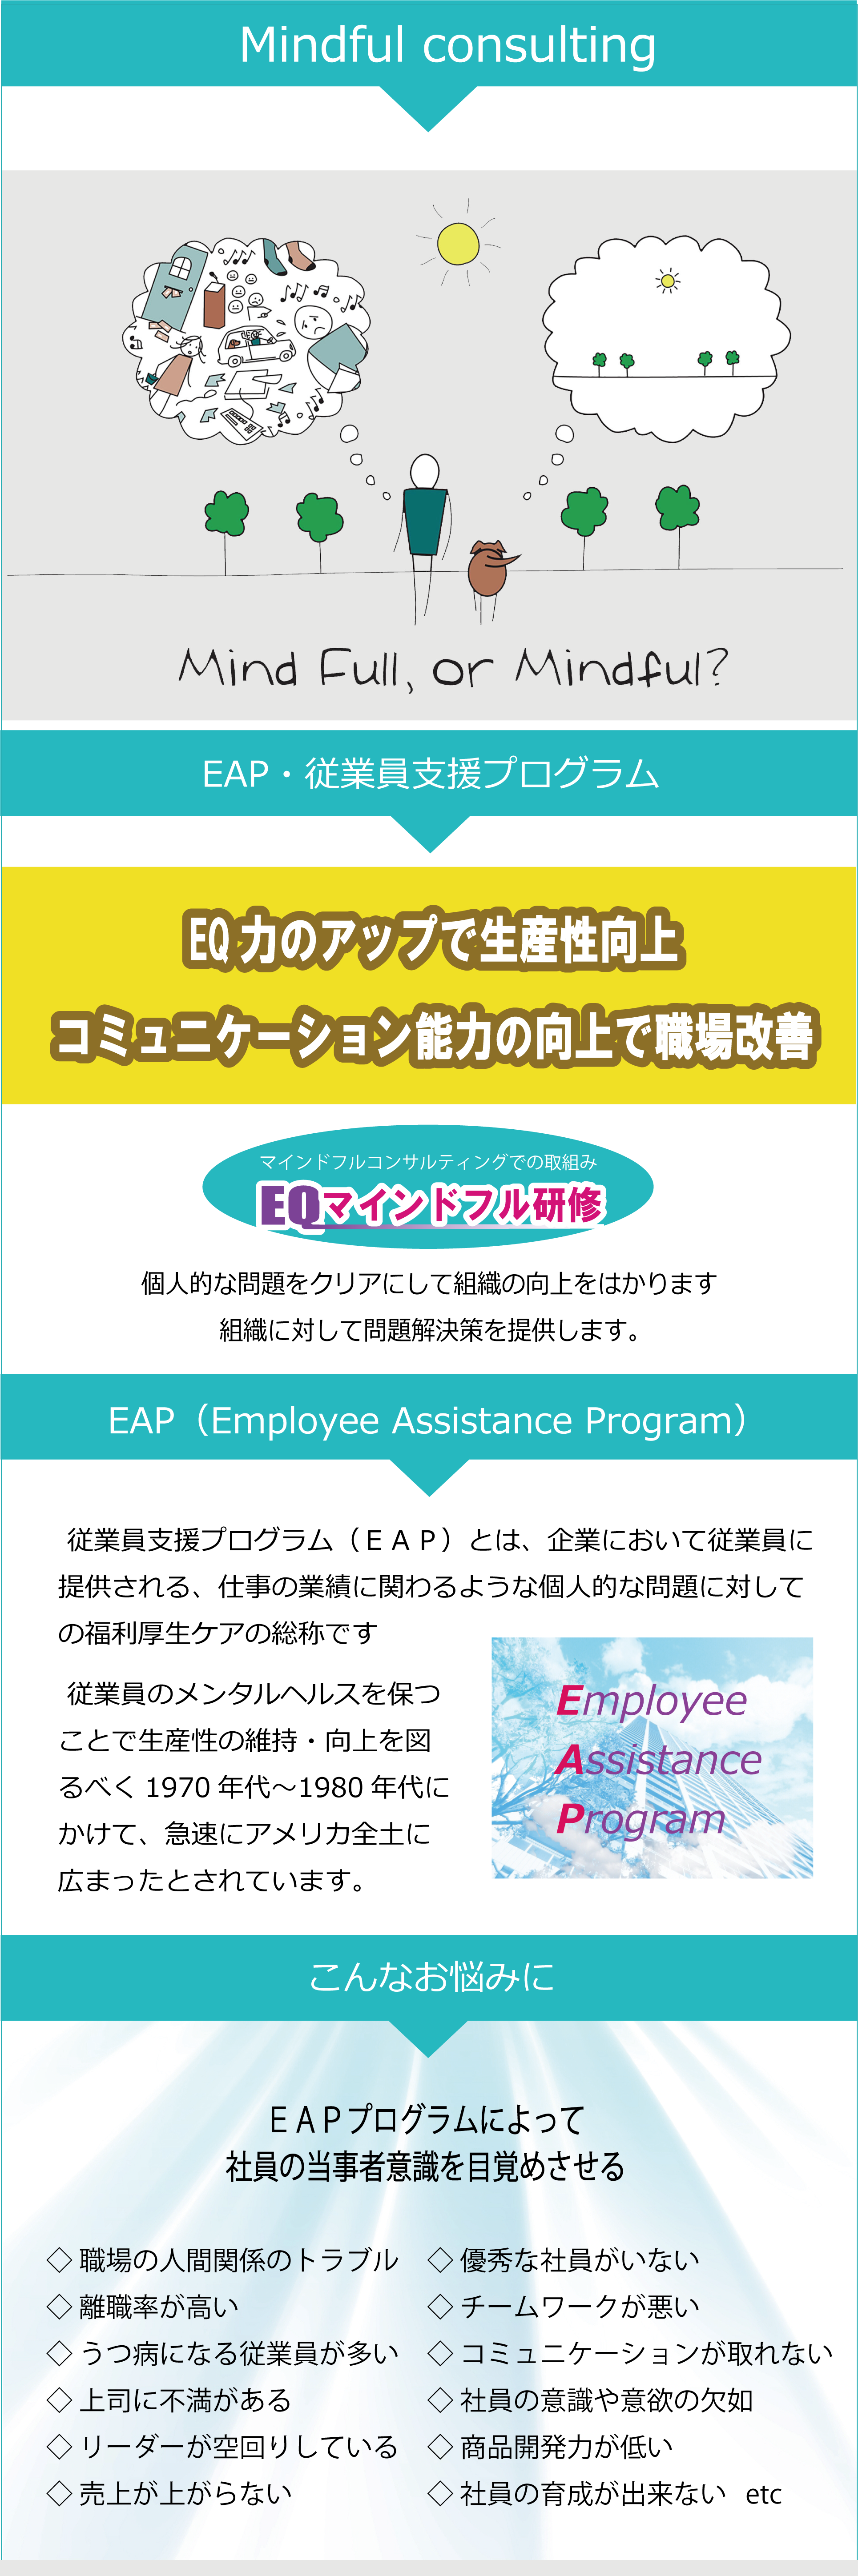 """mind07-2 <span style=""""font-size: 24pt; color:#E2faeb4;"""">企業コンサルティング</span>"""